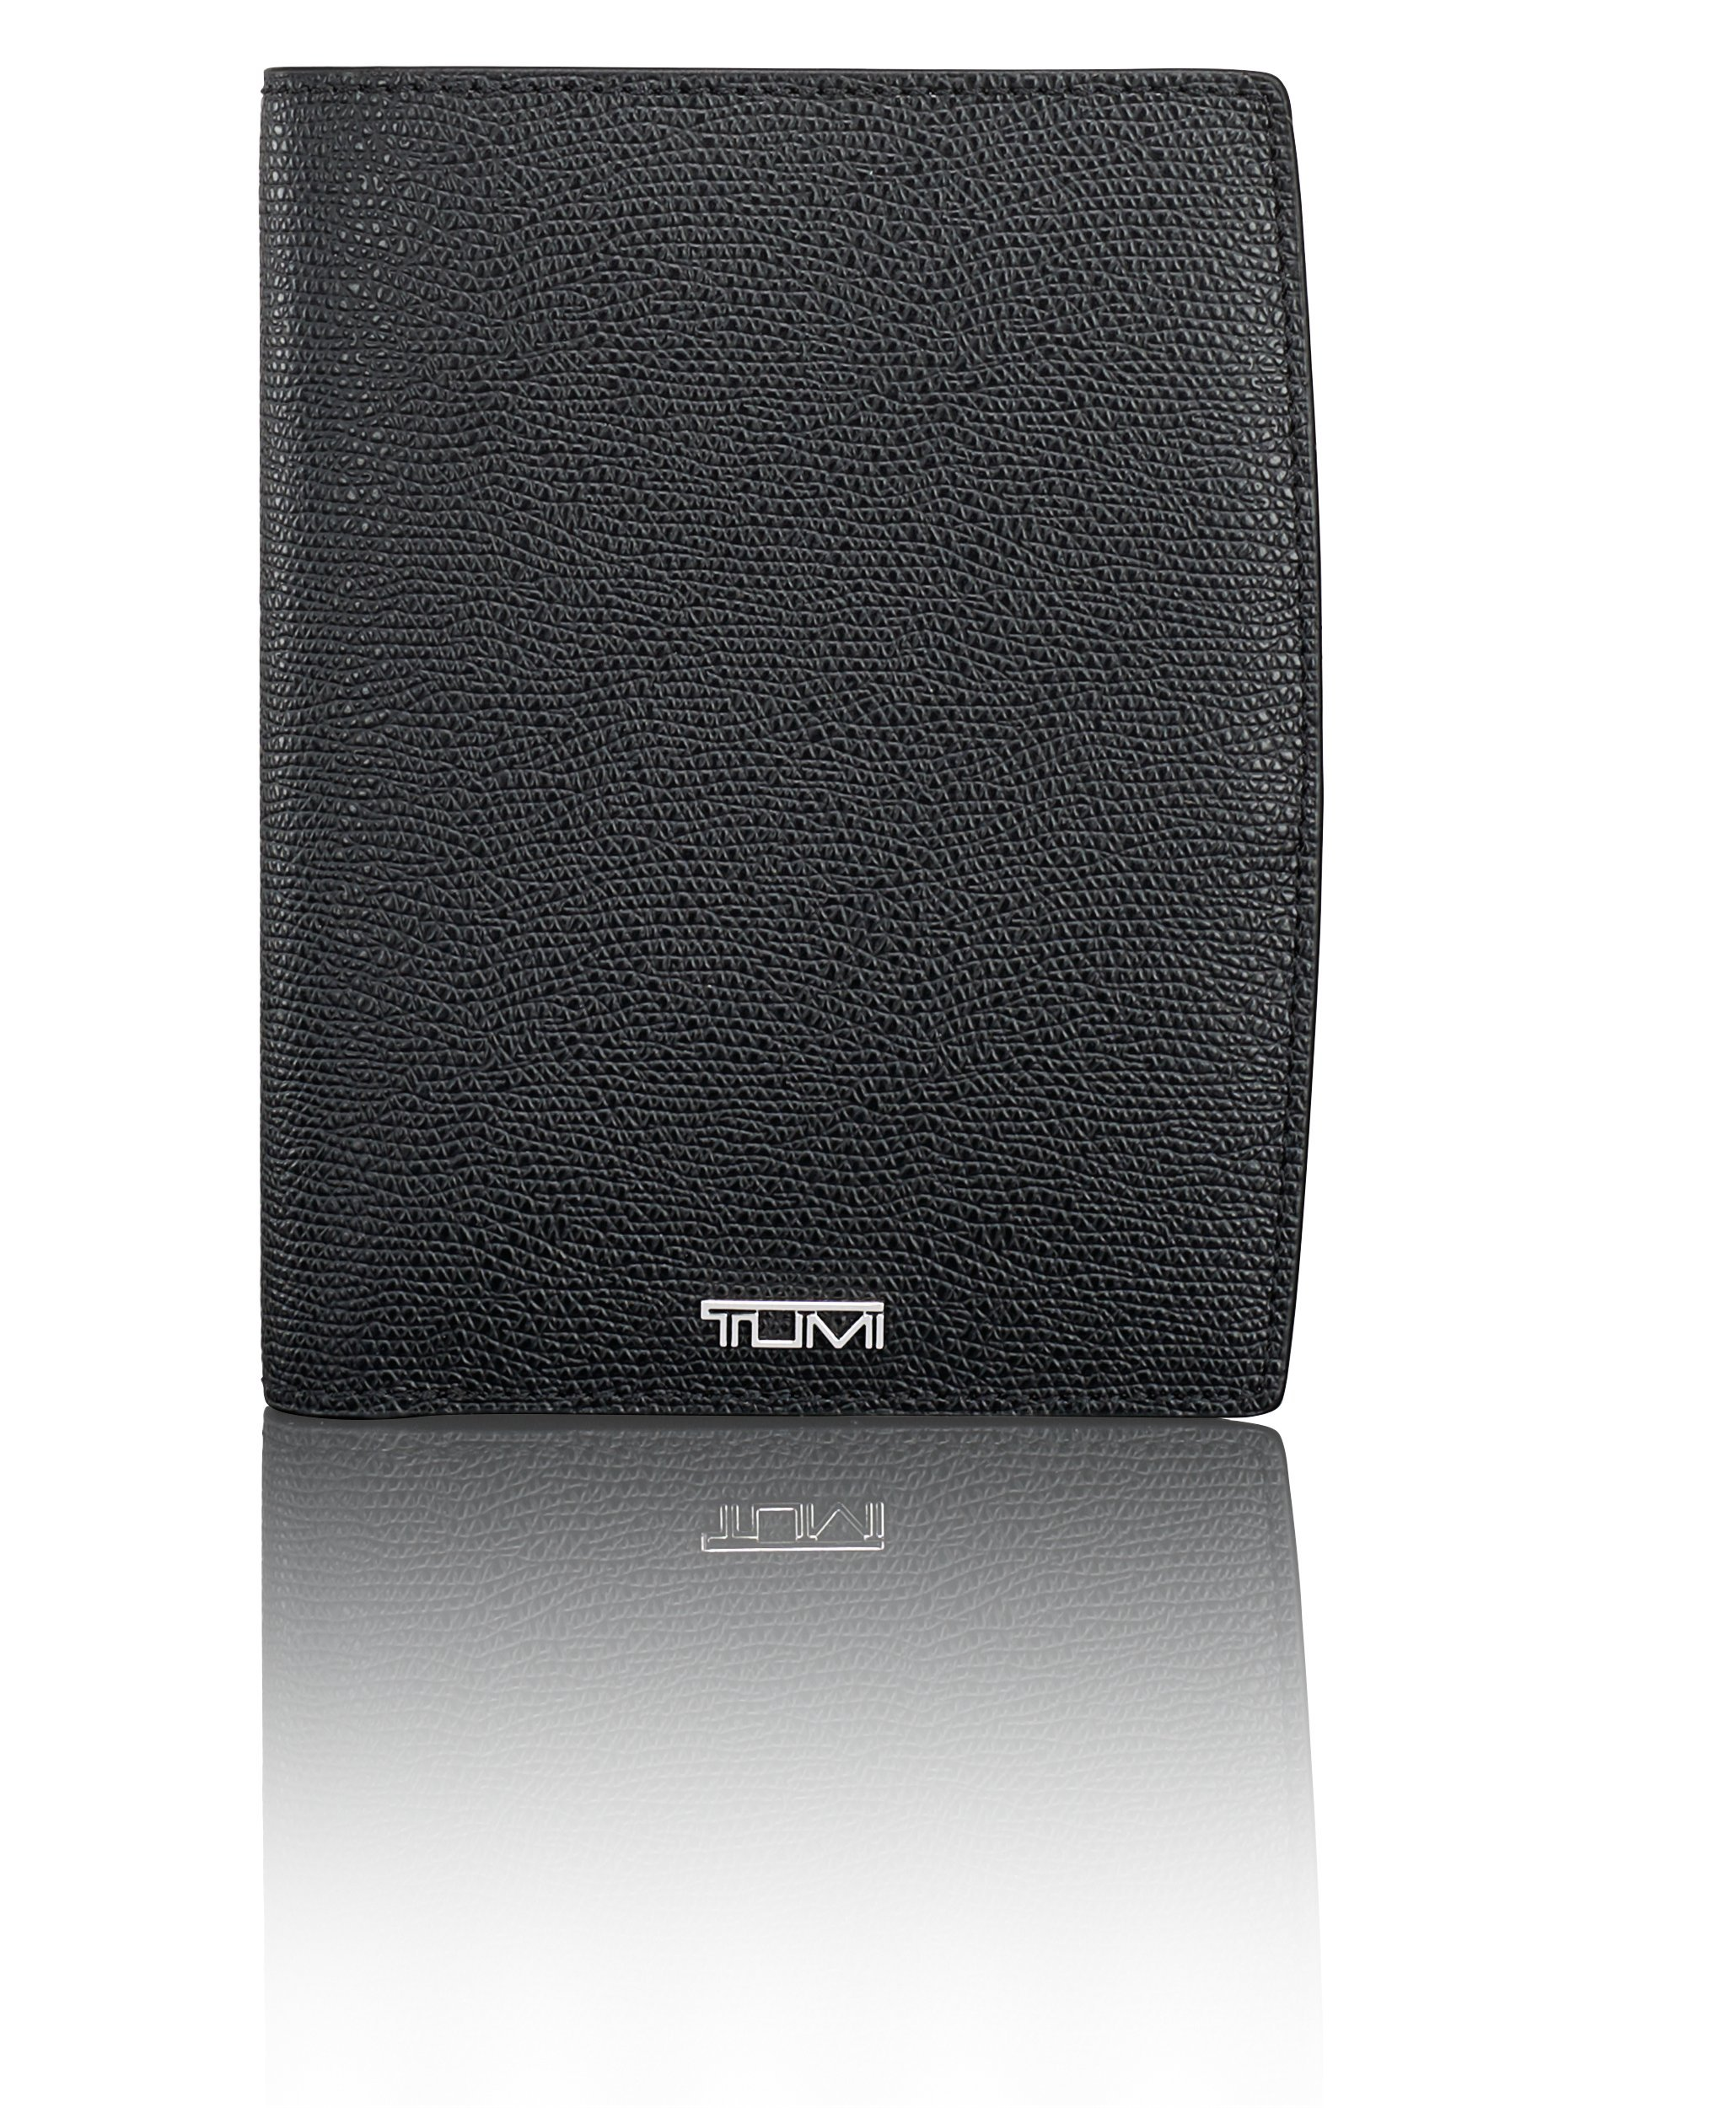 Tumi Women's Sinclair Passport Case, Black by Tumi